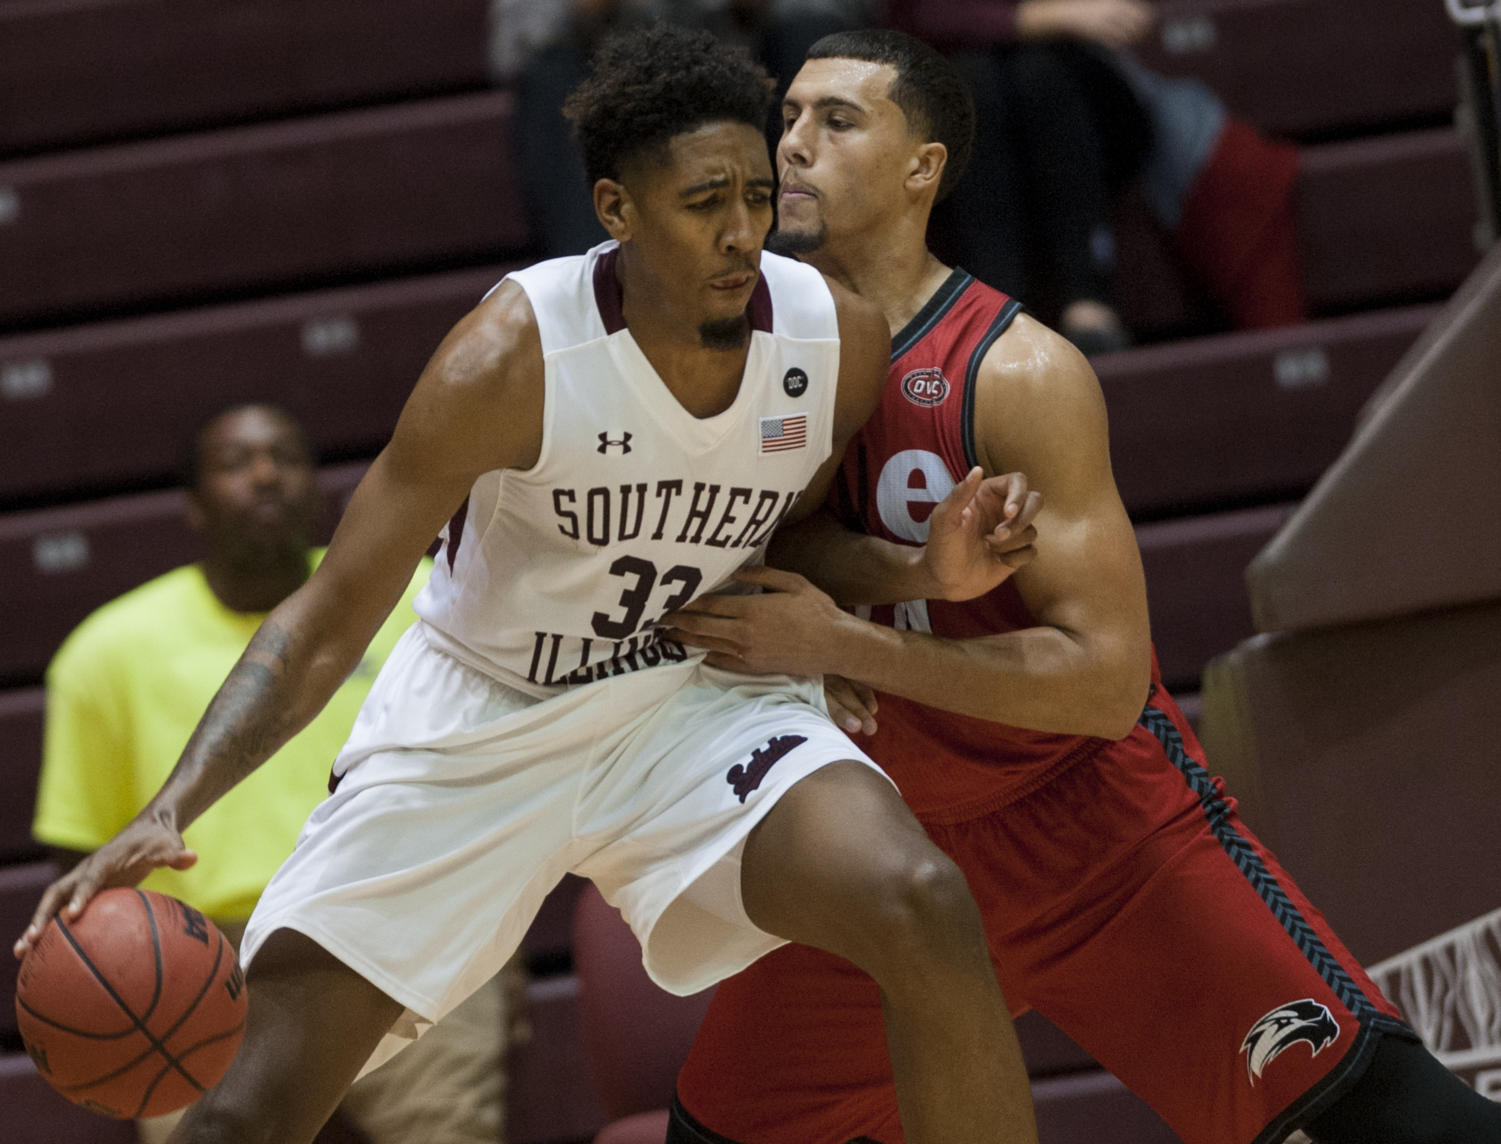 Junior center Kevion Pippen pushes against cougar defense to lay up the ball Wednesday, Nov. 29, 2017, during the Salukis' 86-59 win against SIUE at SIU Arena. (Dylan Nelson | @Dylan_Nelson99)